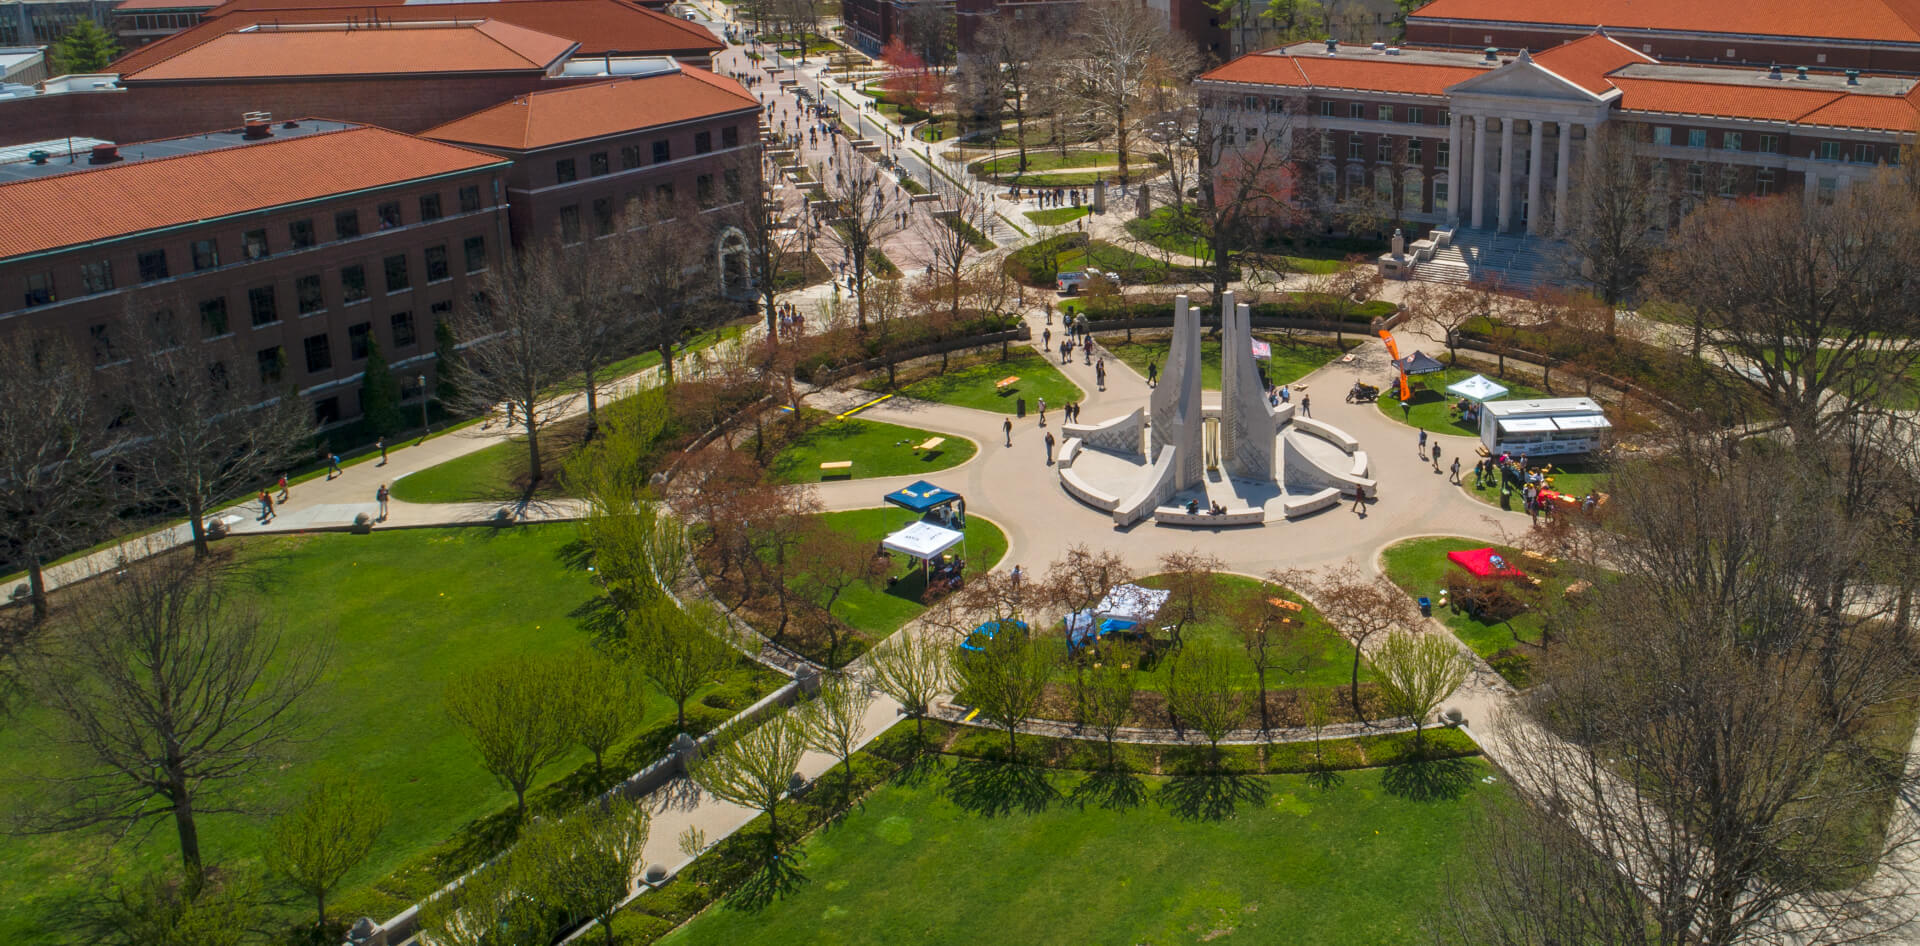 An aerial view of the Engineering Fountain